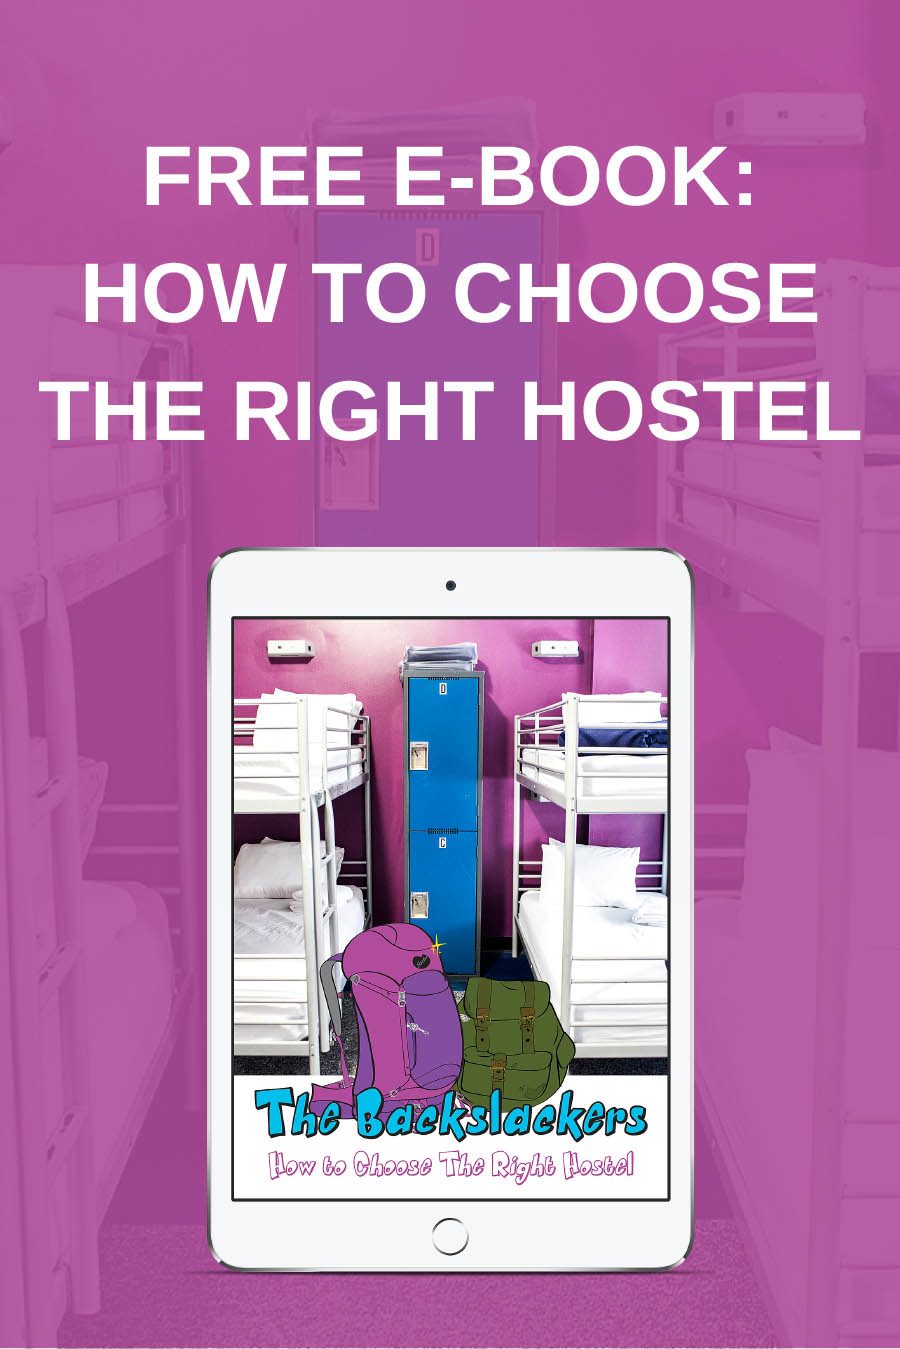 Free E-Book: How to Choose the Right Hostel